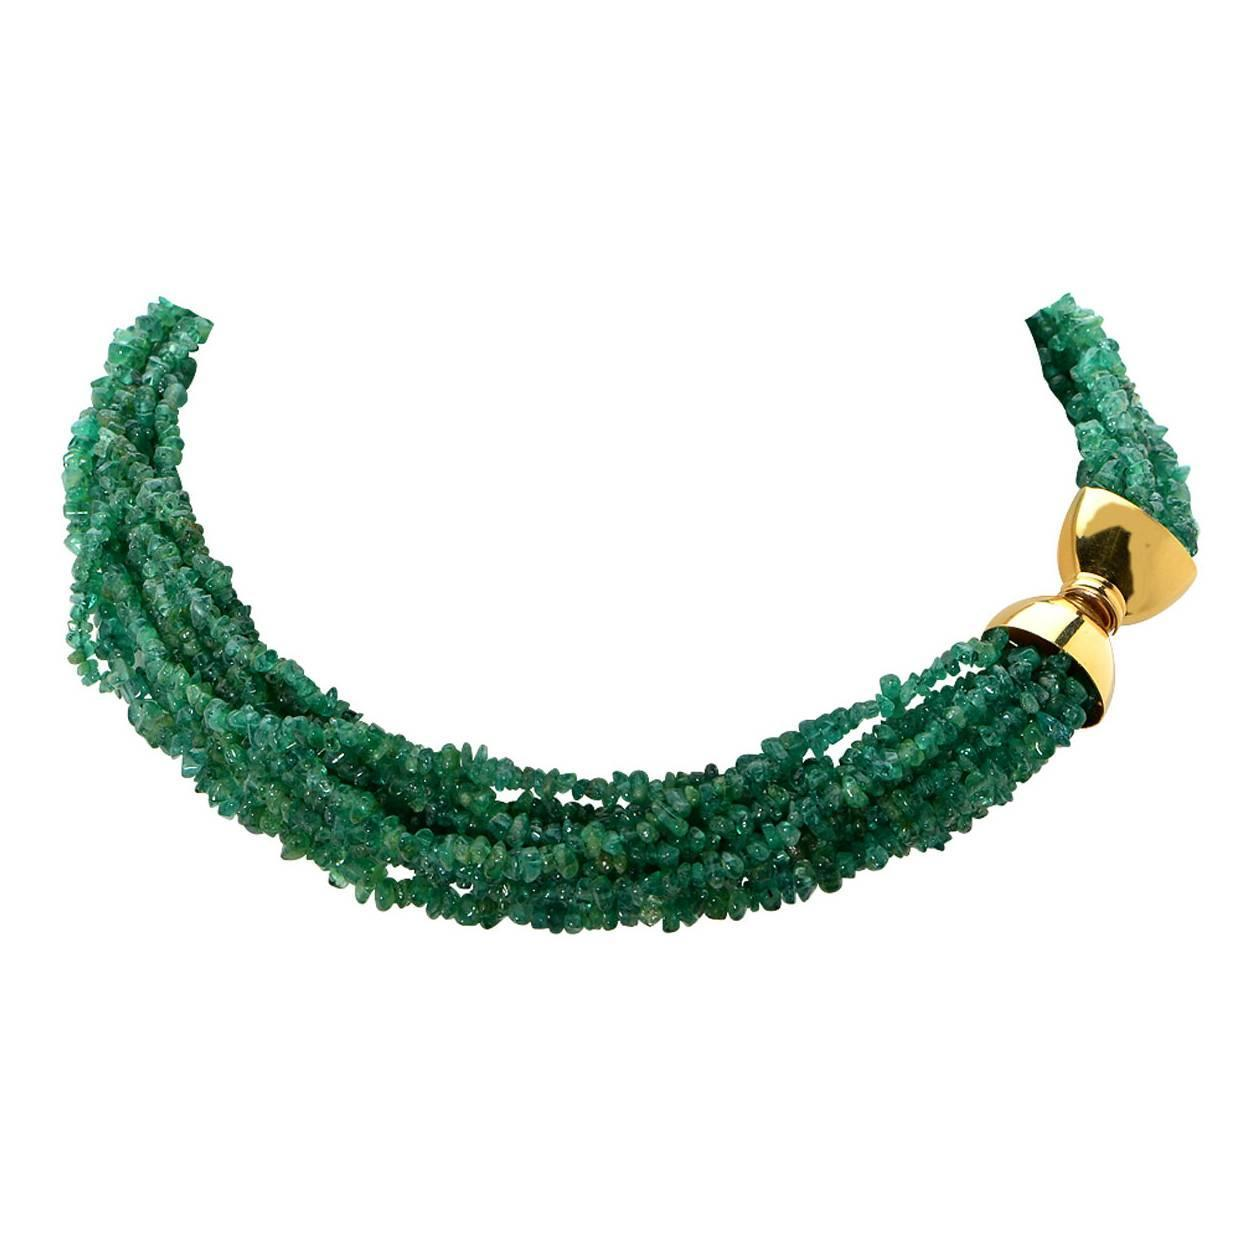 multistrand emerald bead necklace for sale at 1stdibs